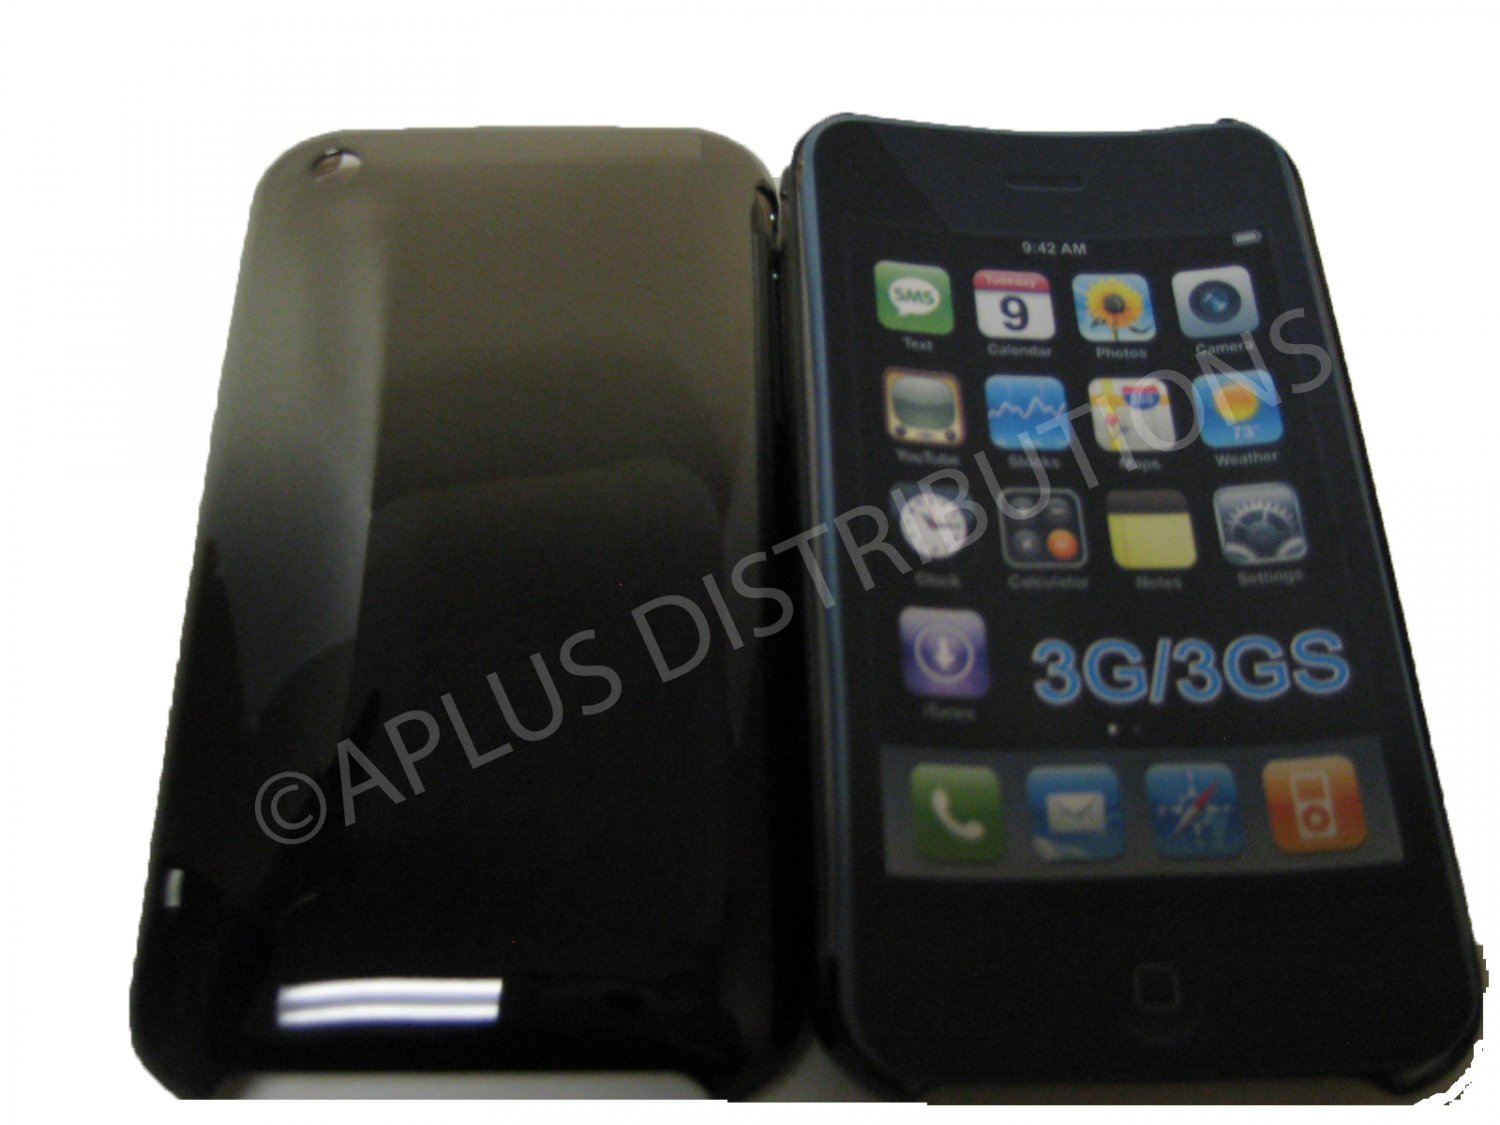 New Black Metallic Reflection Design Hard Protective Cover For iPhone 3G 3GS - (0093)